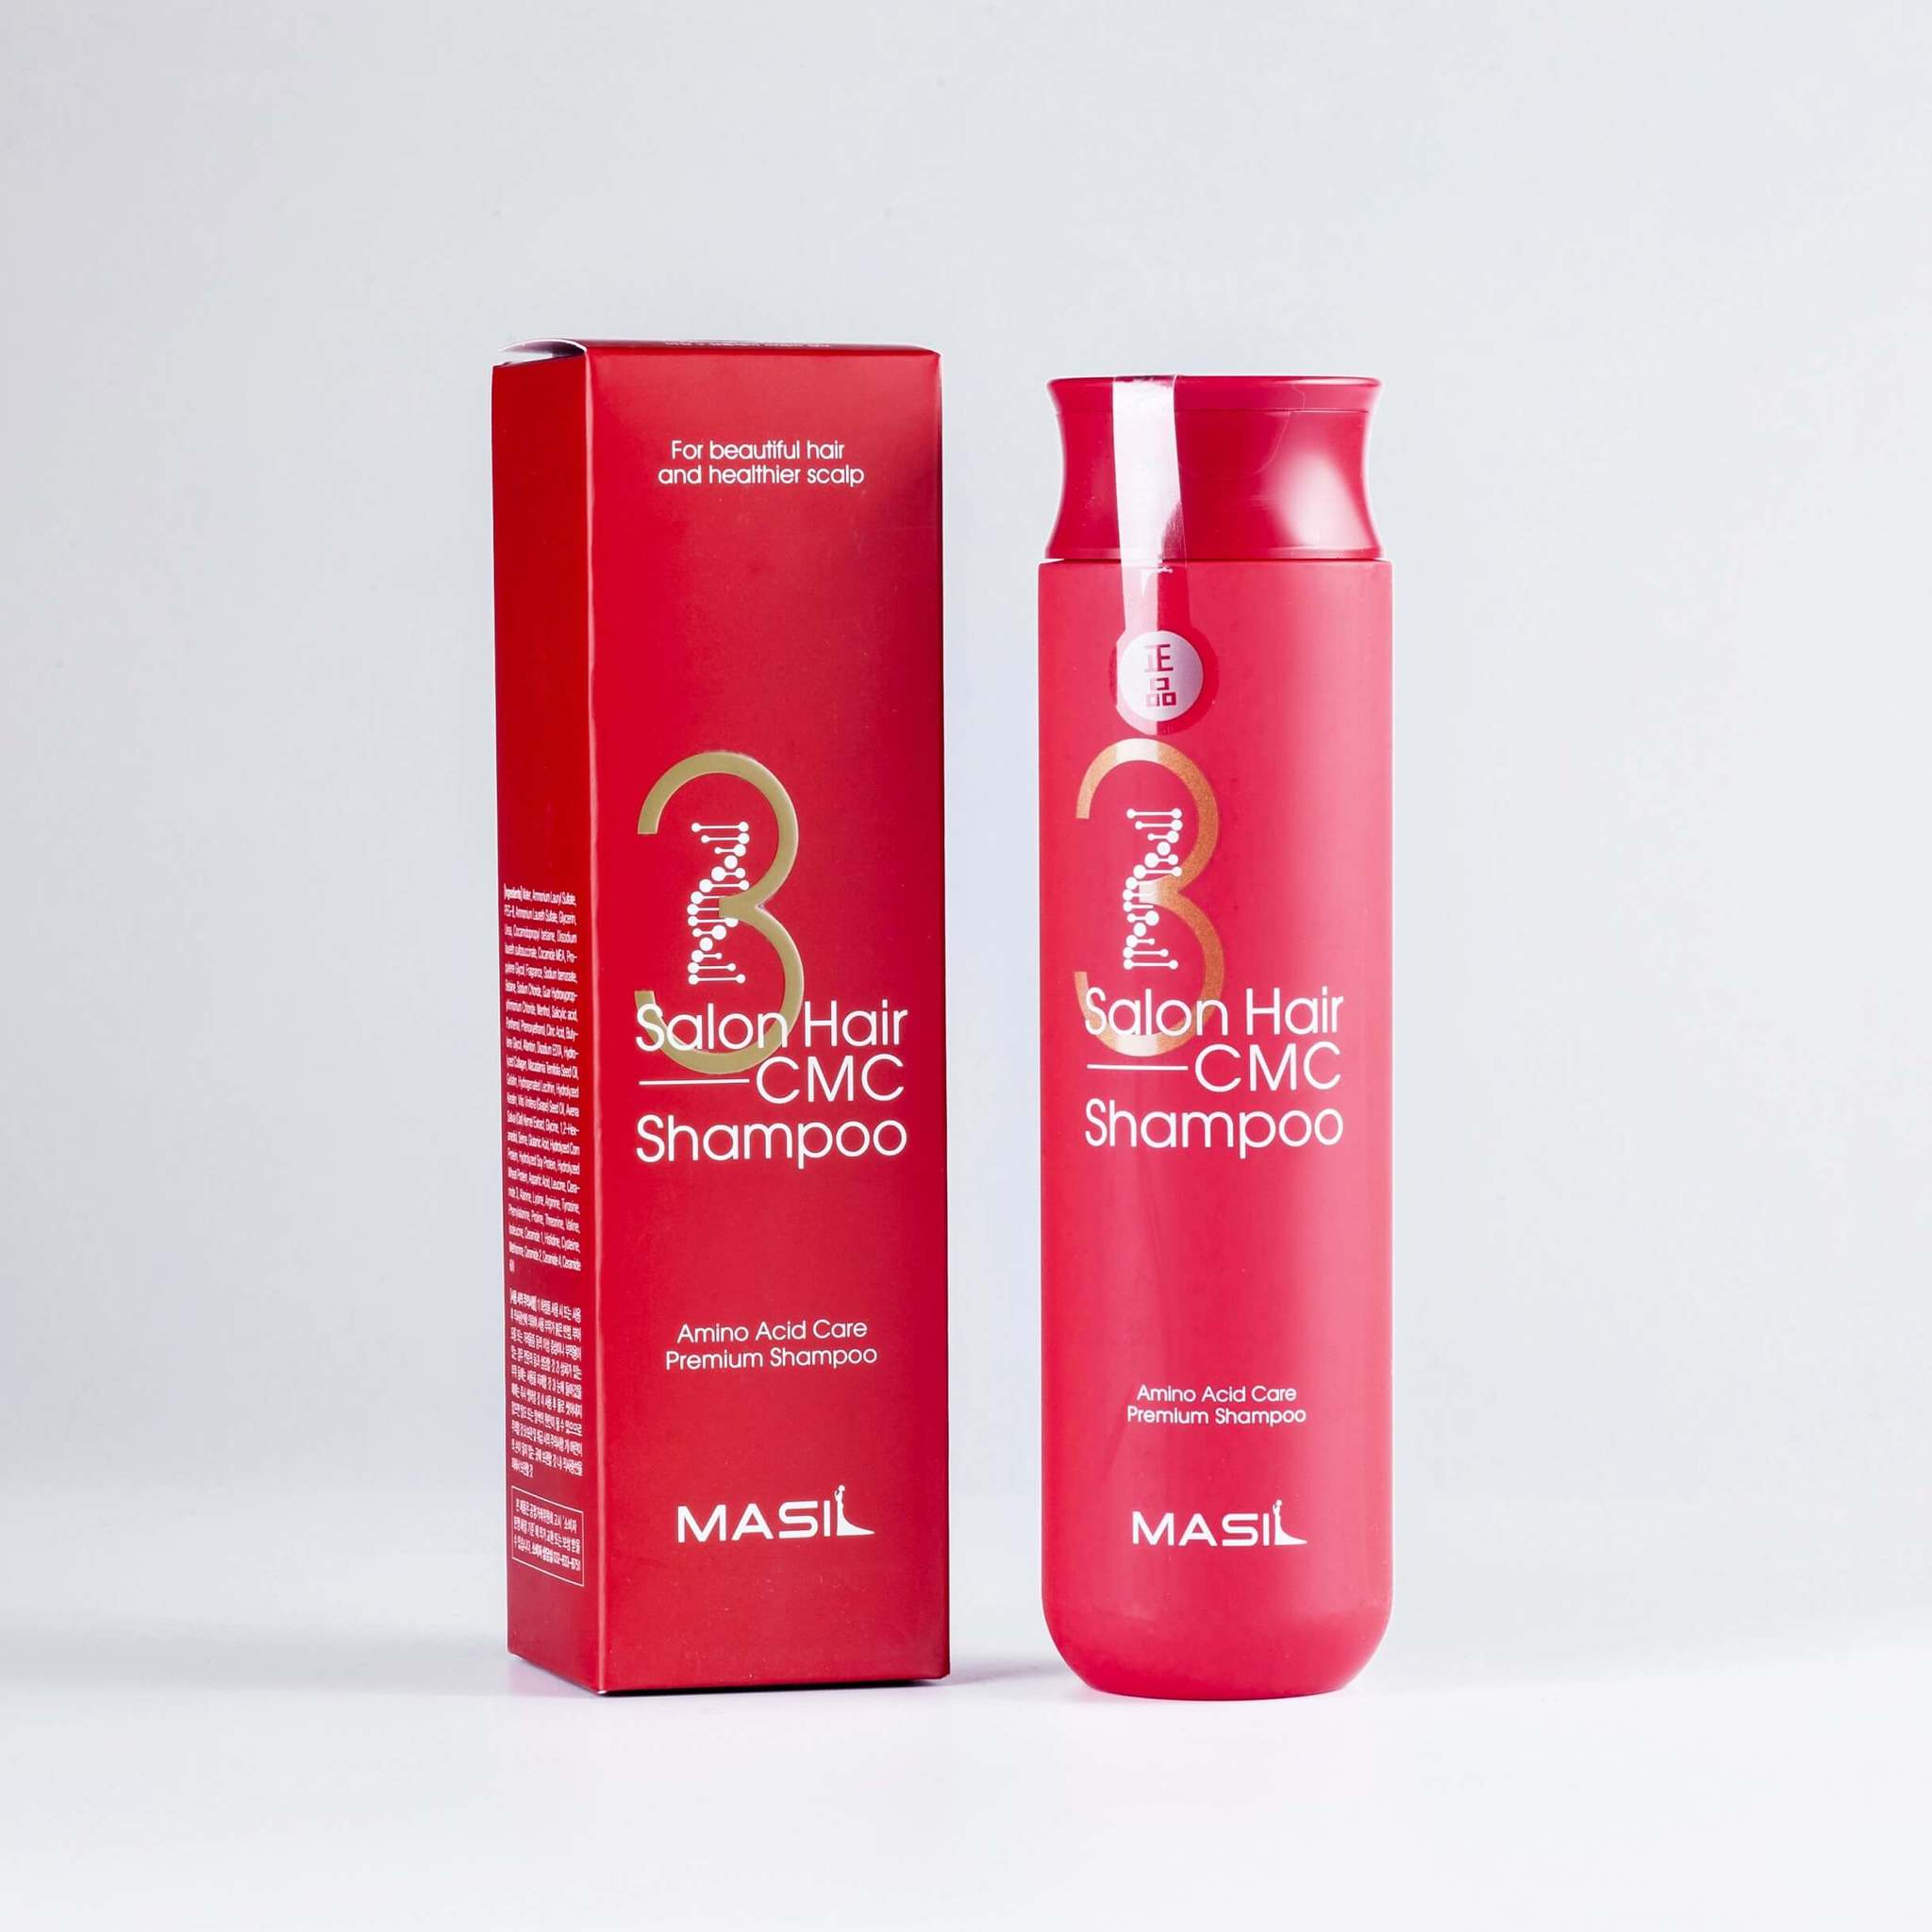 Masil Шампунь 3 Salon Hair CMC Shampoo